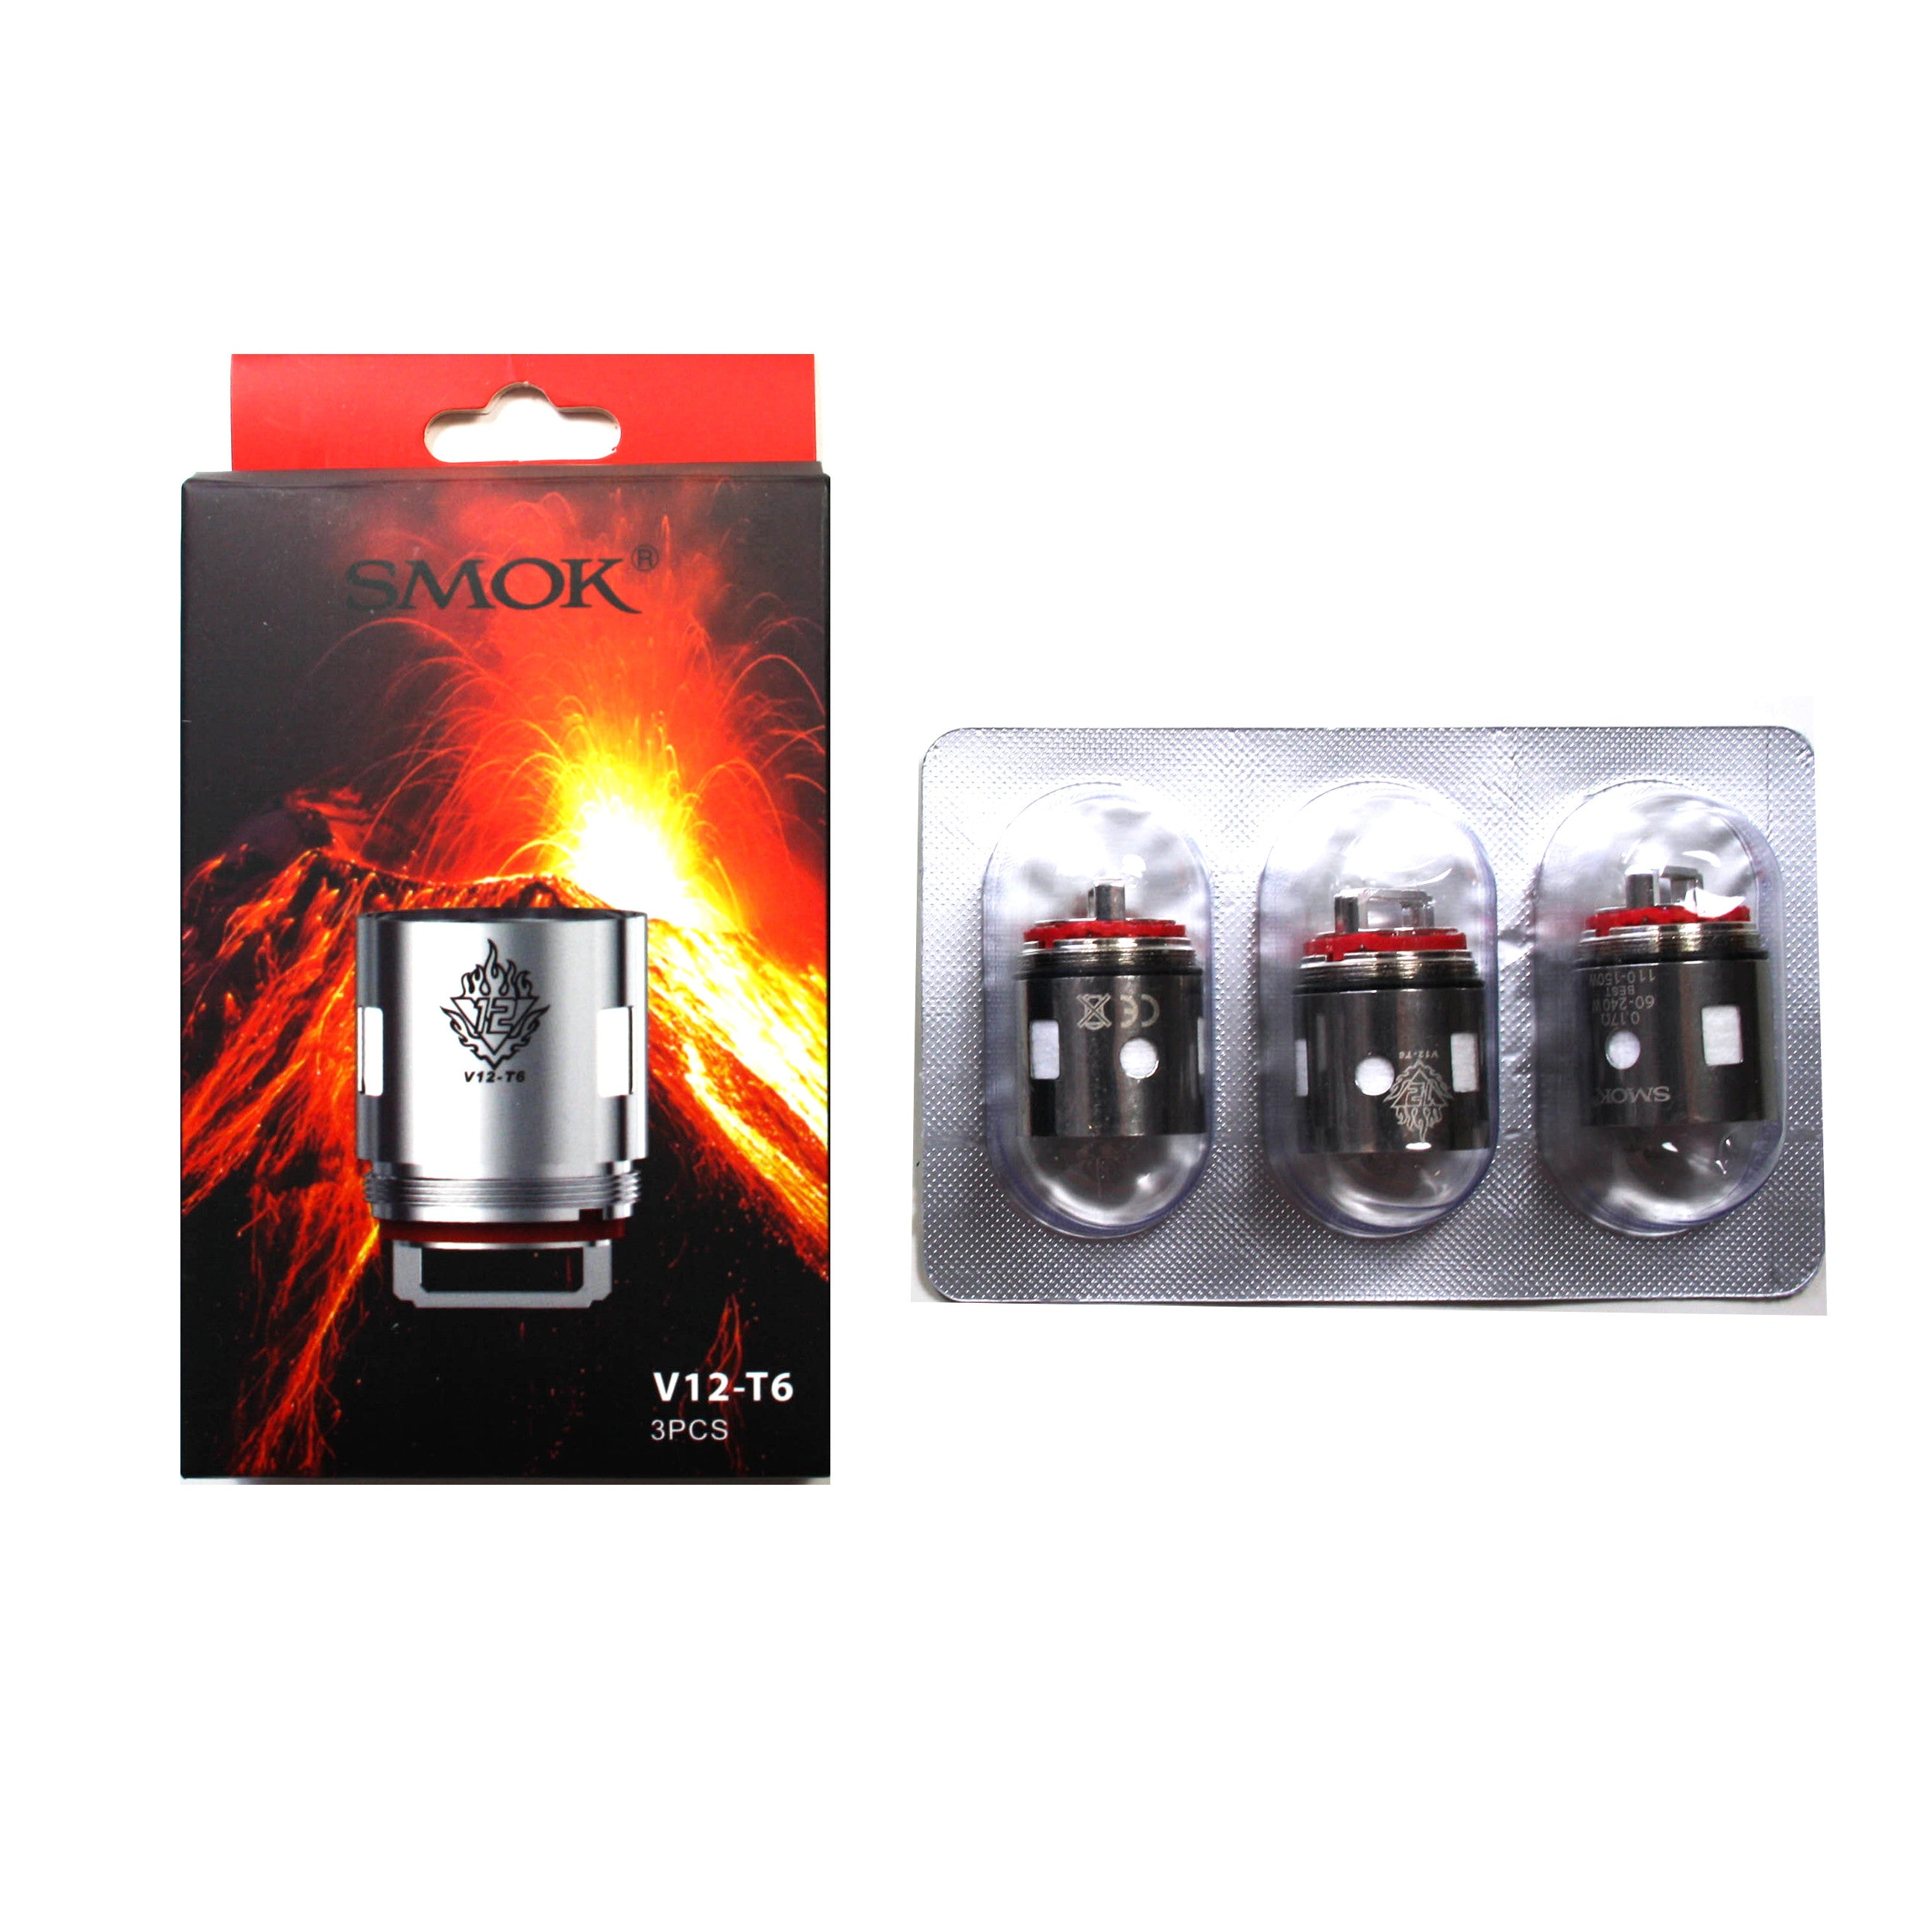 Smok TFV12 T6 Coil - 3 Pack